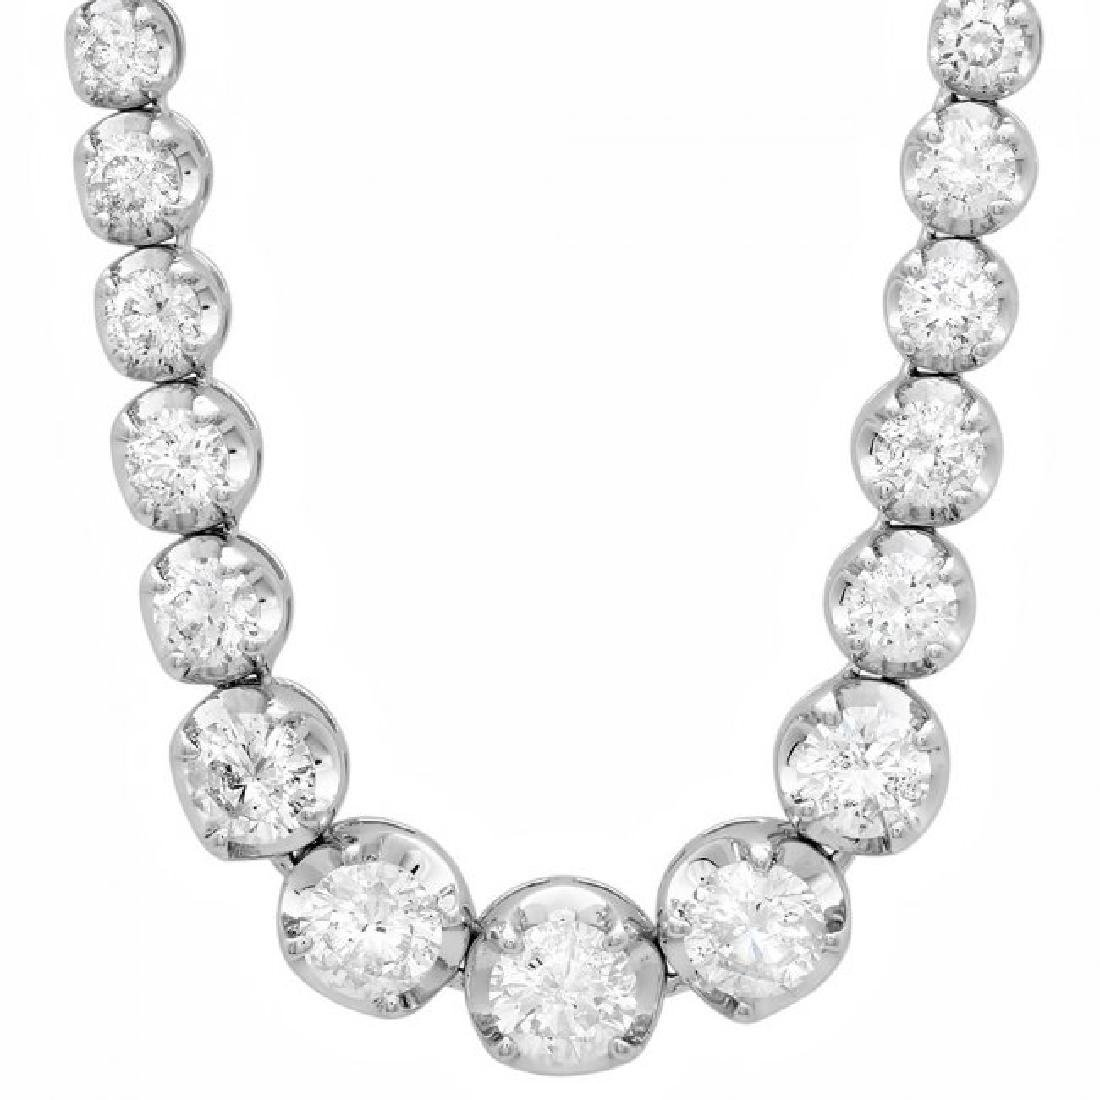 18k White Gold 11.60ct Diamond Necklace - 6